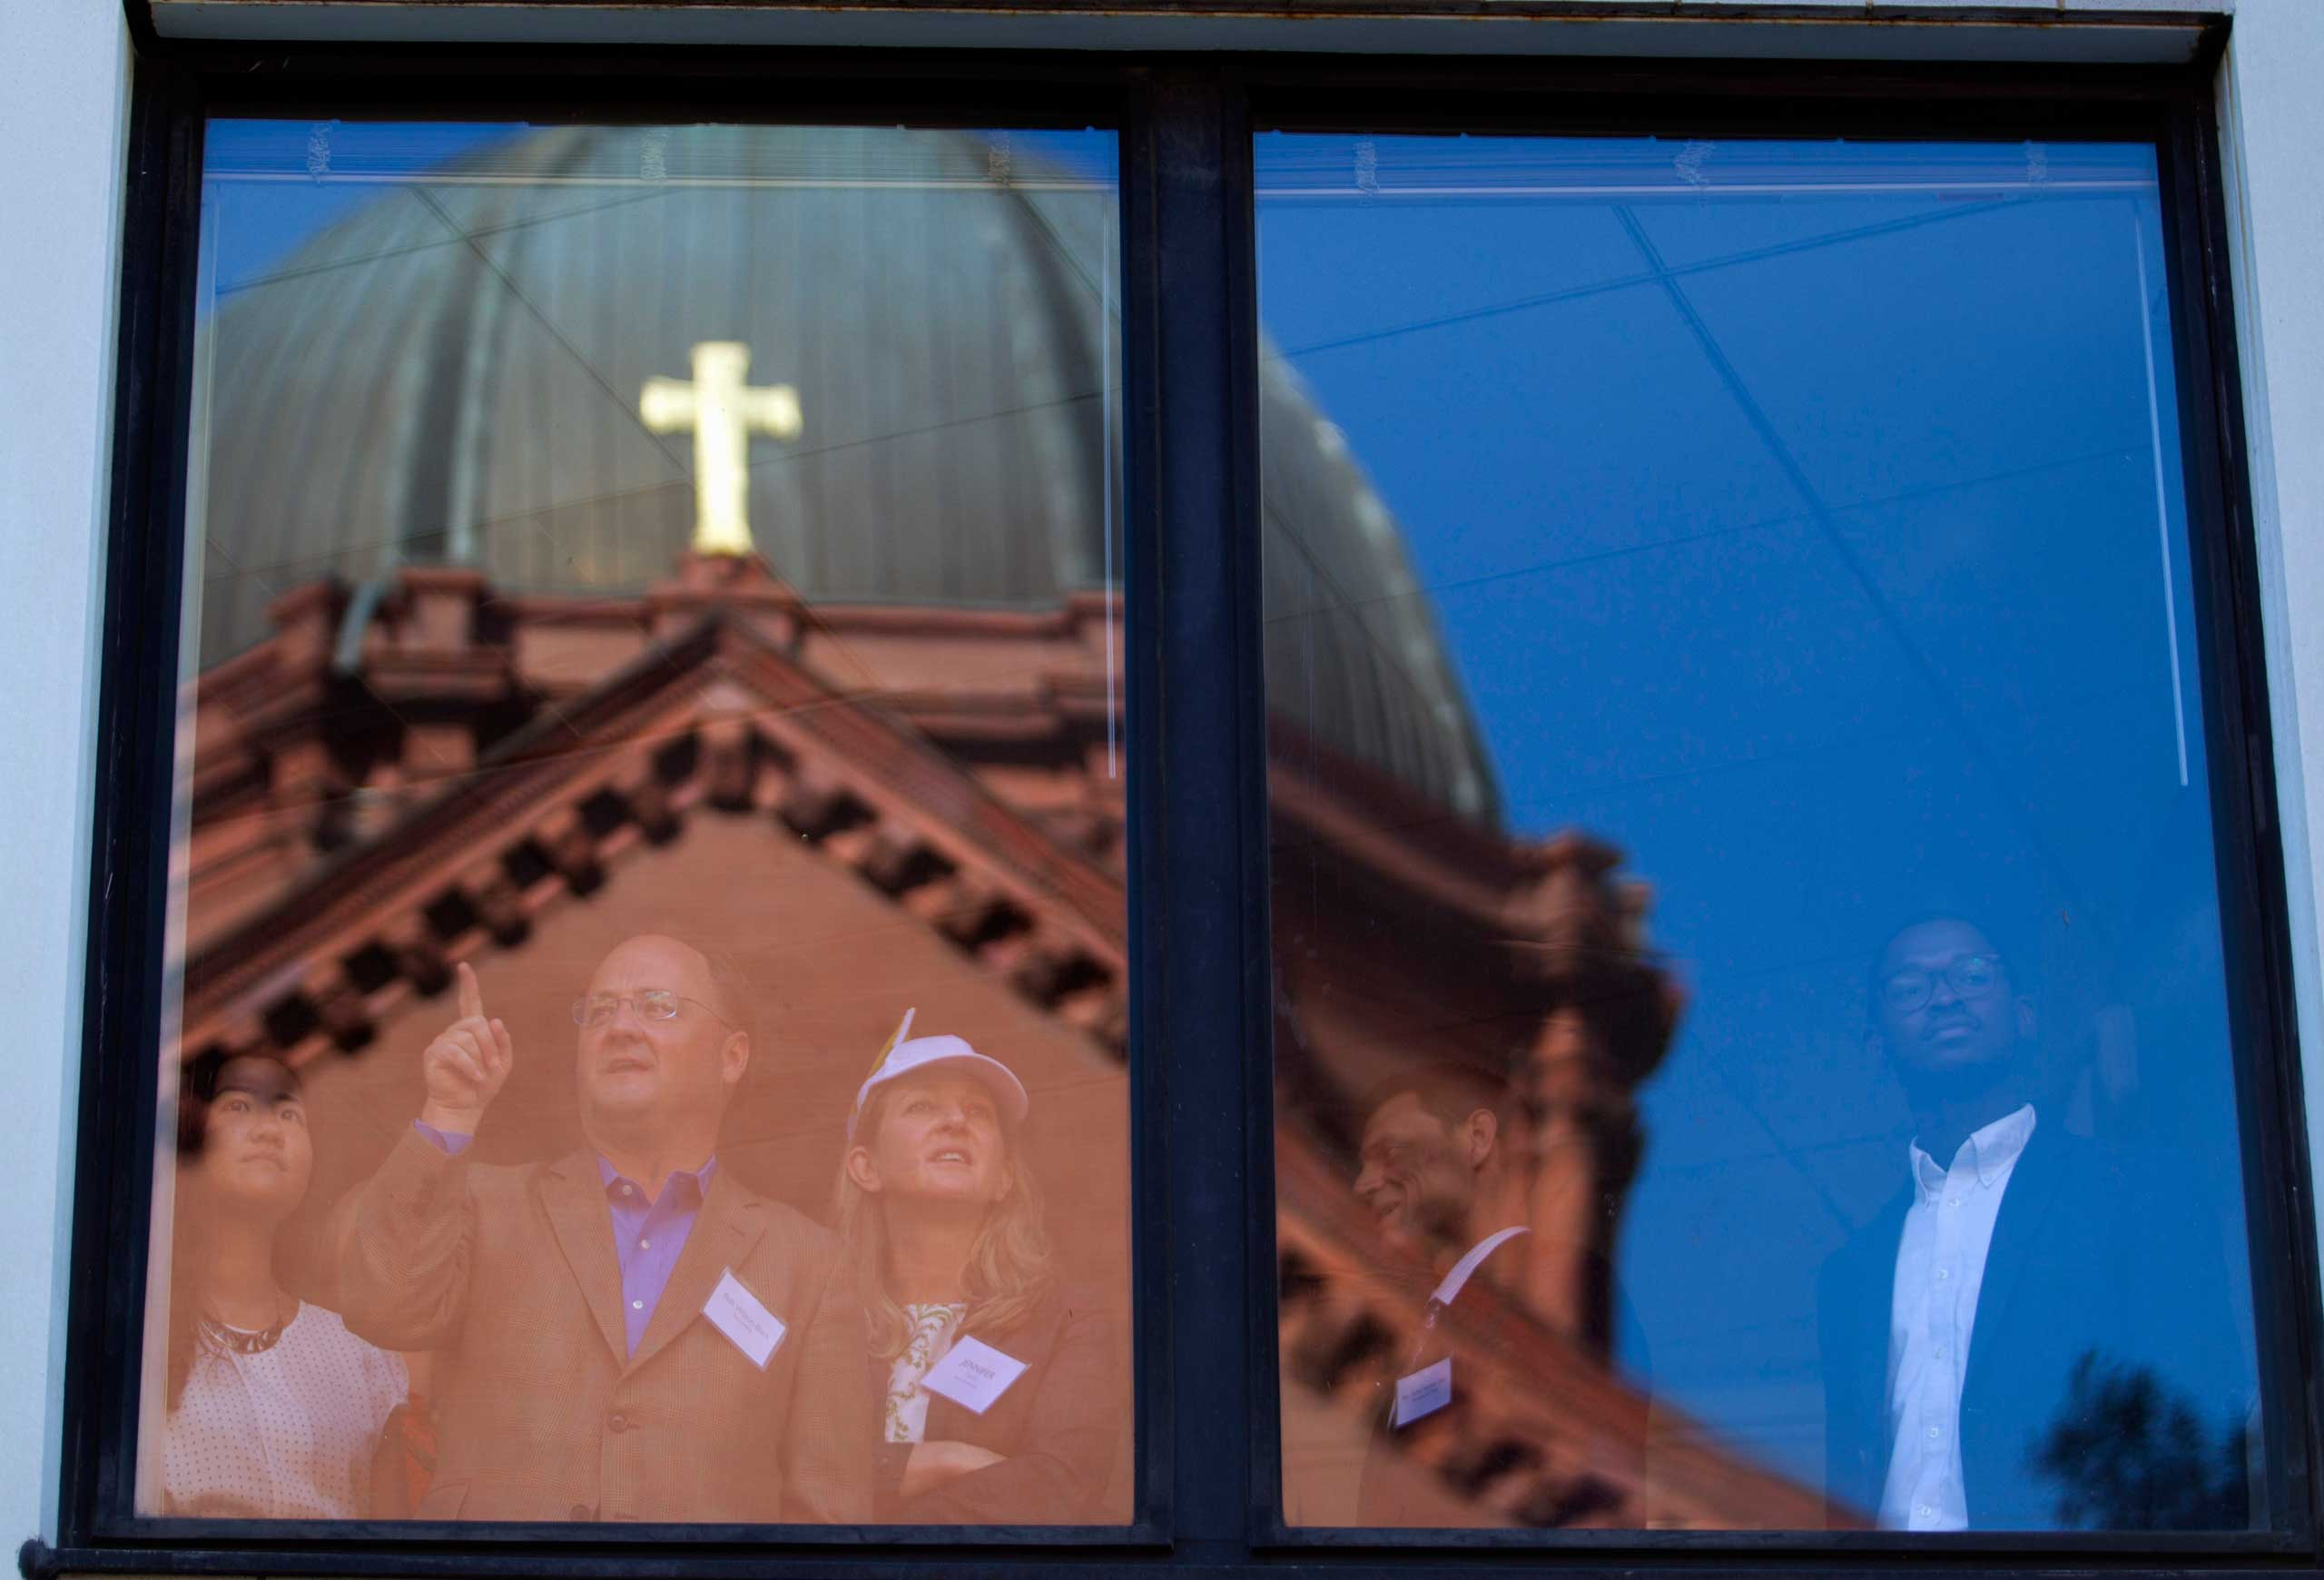 St. Mathews Cathedral is reflected in a nearby building as onlookers wait for Pope Francis to arrive for midday prayer service at St. Matthew's Cathedral in Washington, on Sept. 23, 2015.